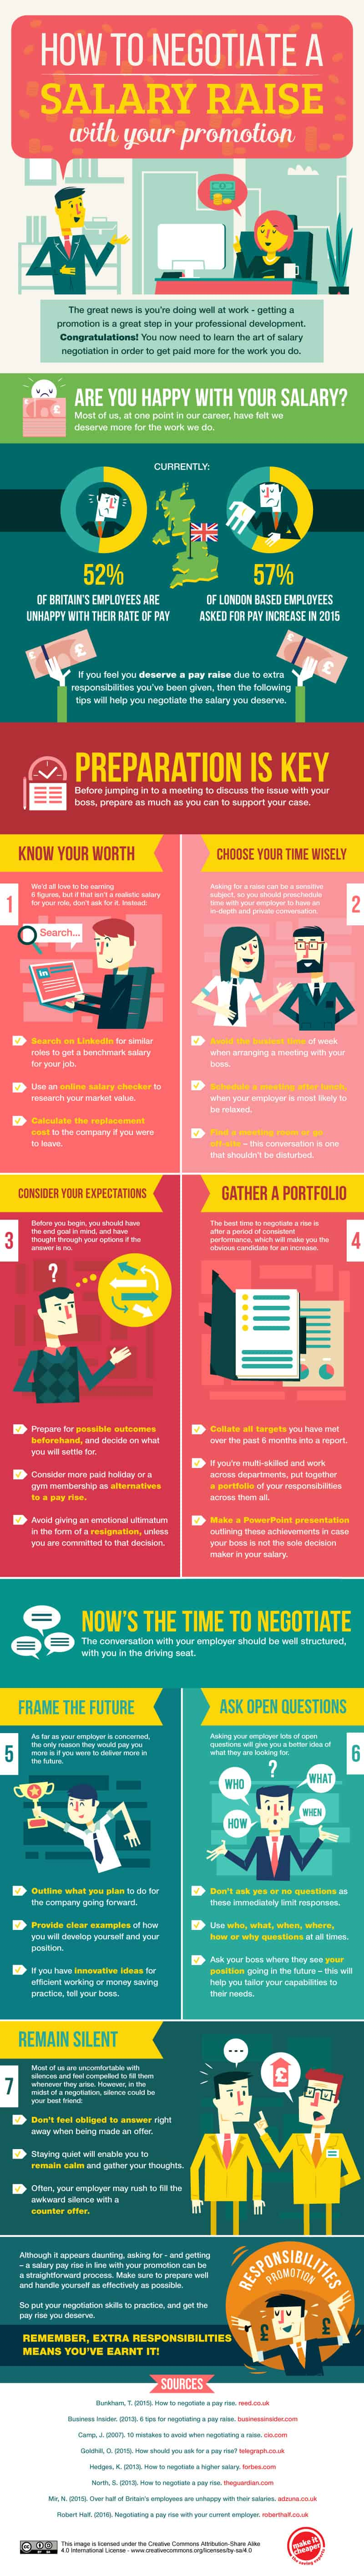 how to negotiate a salary raise your promotion infographic how to negotiate a salary raise your promotion